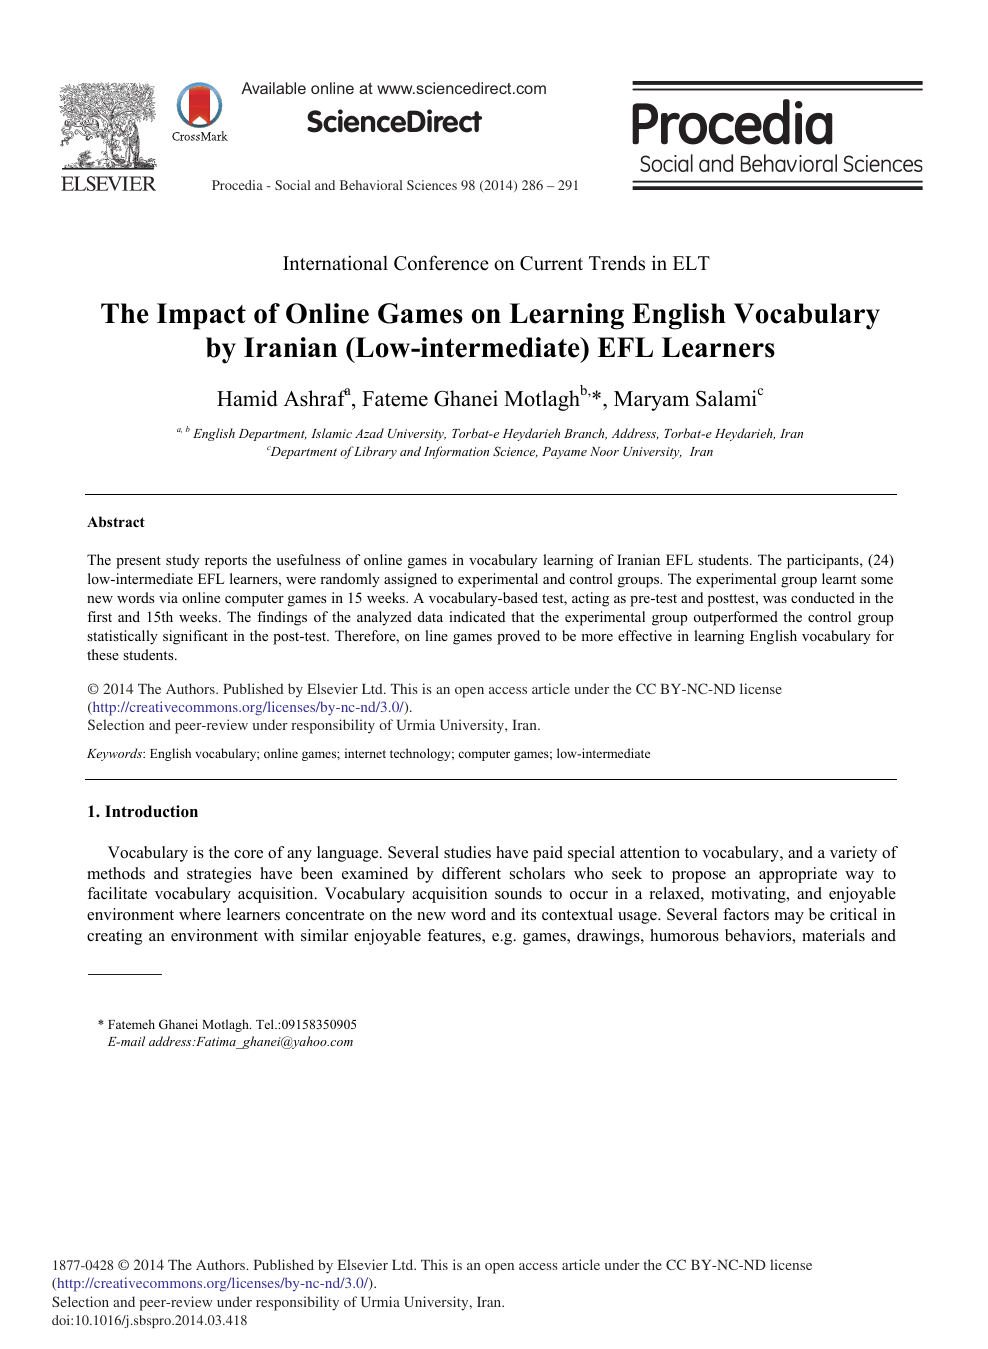 The Impact of Online Games on Learning English Vocabulary by Iranian